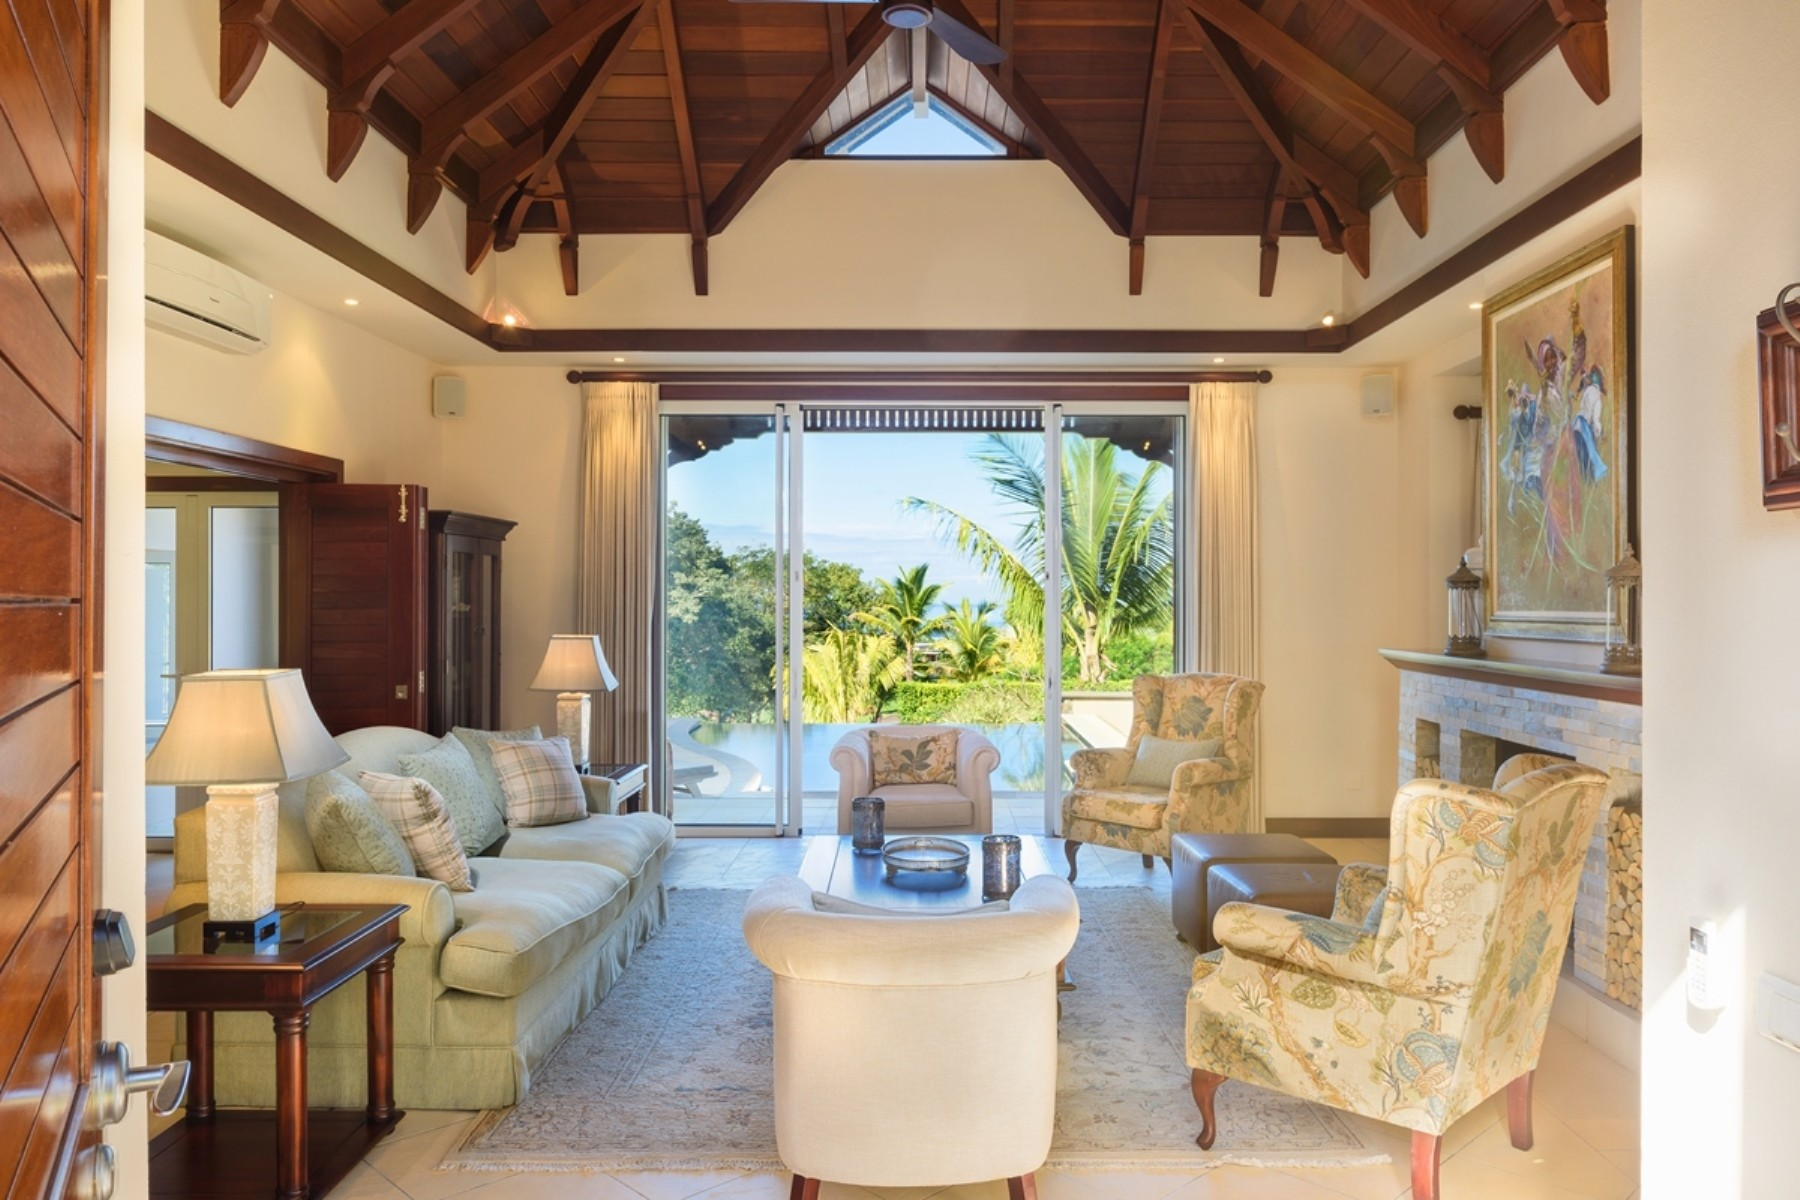 Single Family Home for Sale at 54, Villas Valriche Bel Ombre, Savanne, Mauritius